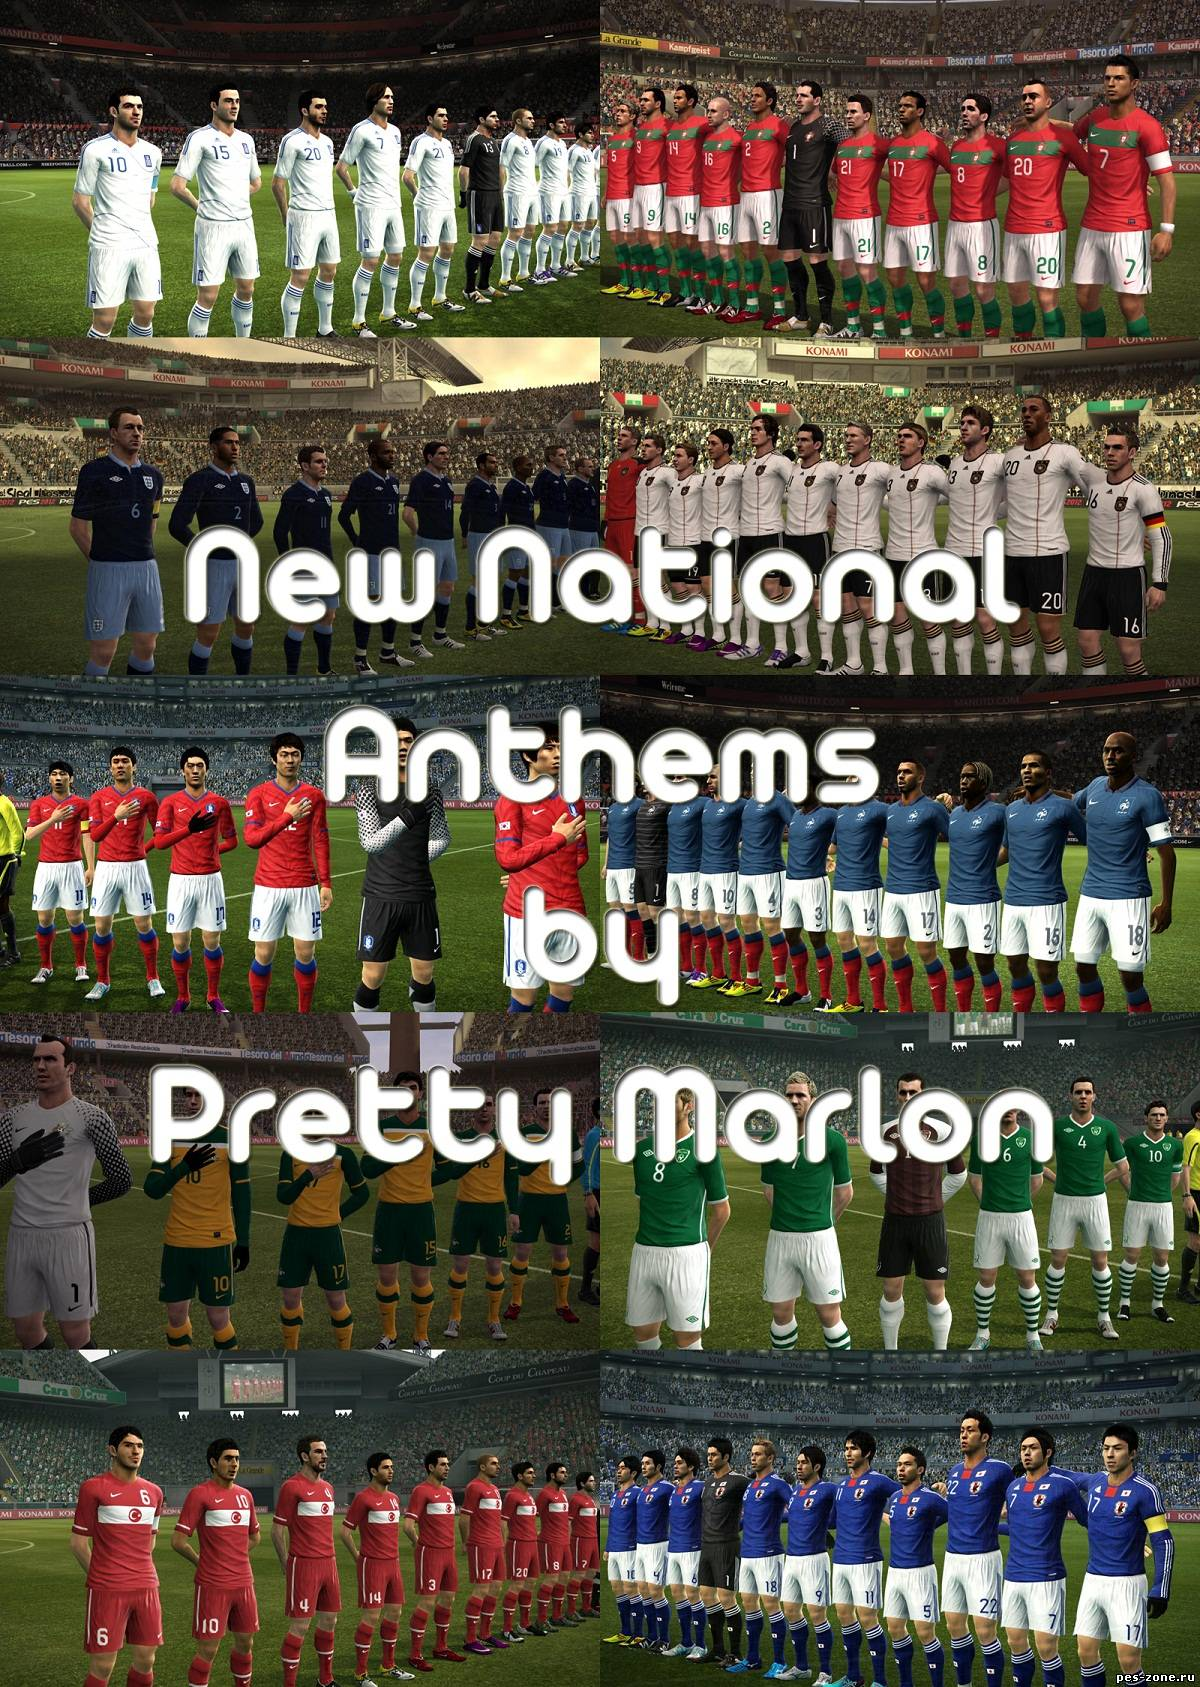 Pes 2012 New National anthems by PrettyMarlon